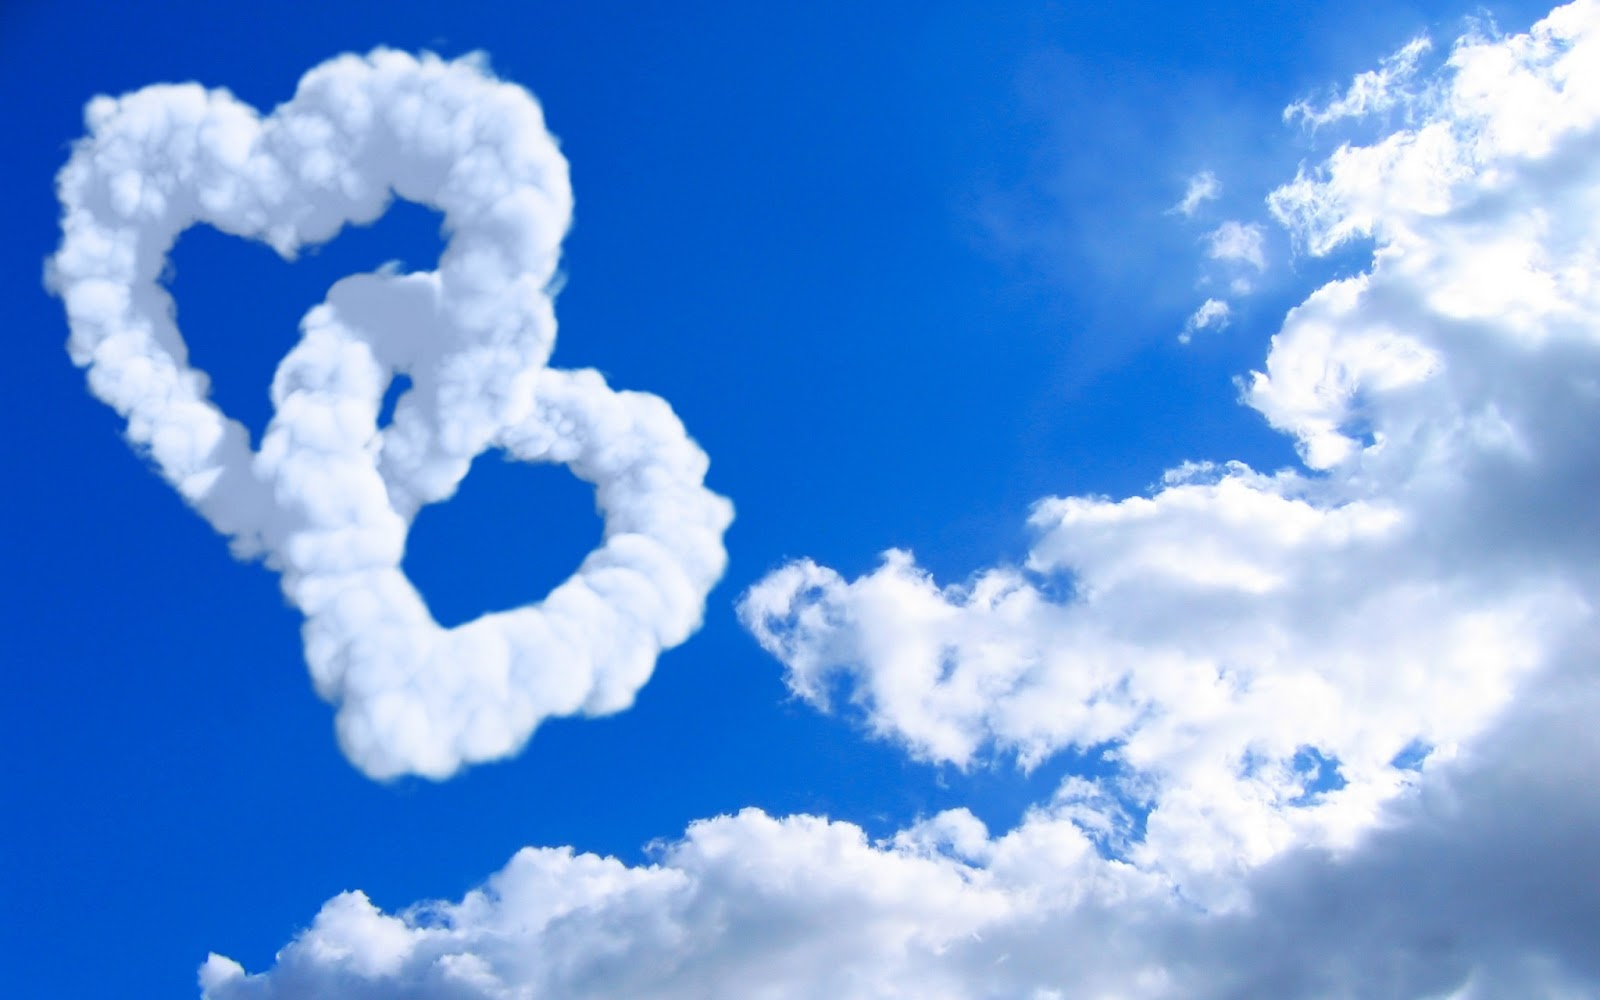 Love Wallpaper 3d Live : Free Wallpaper Dekstop: 3d love with clouds wallpaper ...